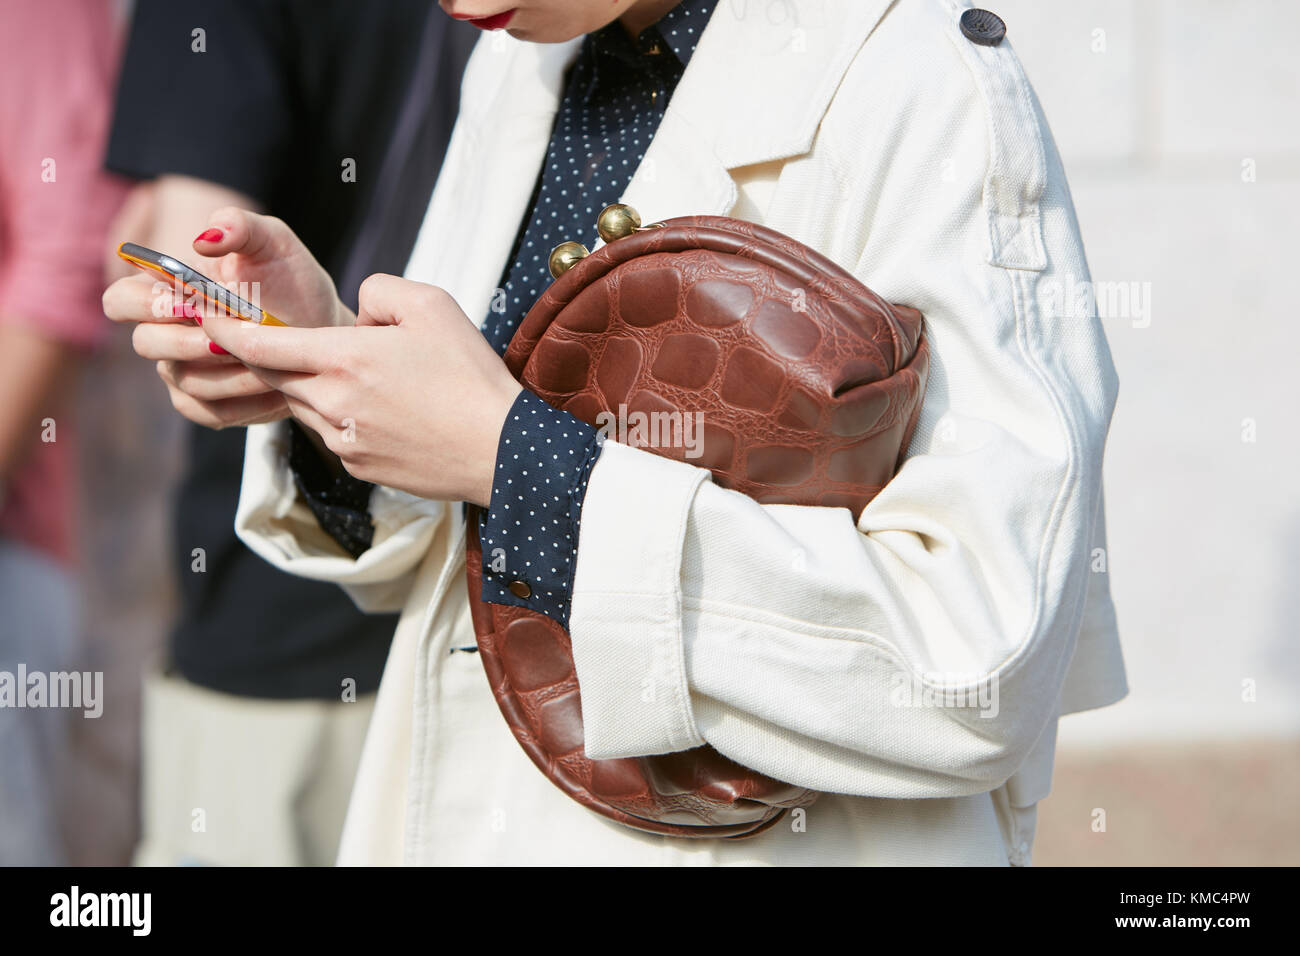 MILAN - SEPTEMBER 23: Woman with brown reptile bag and white trench coat looking at smartphone before Gabriele Colangelo - Stock Image